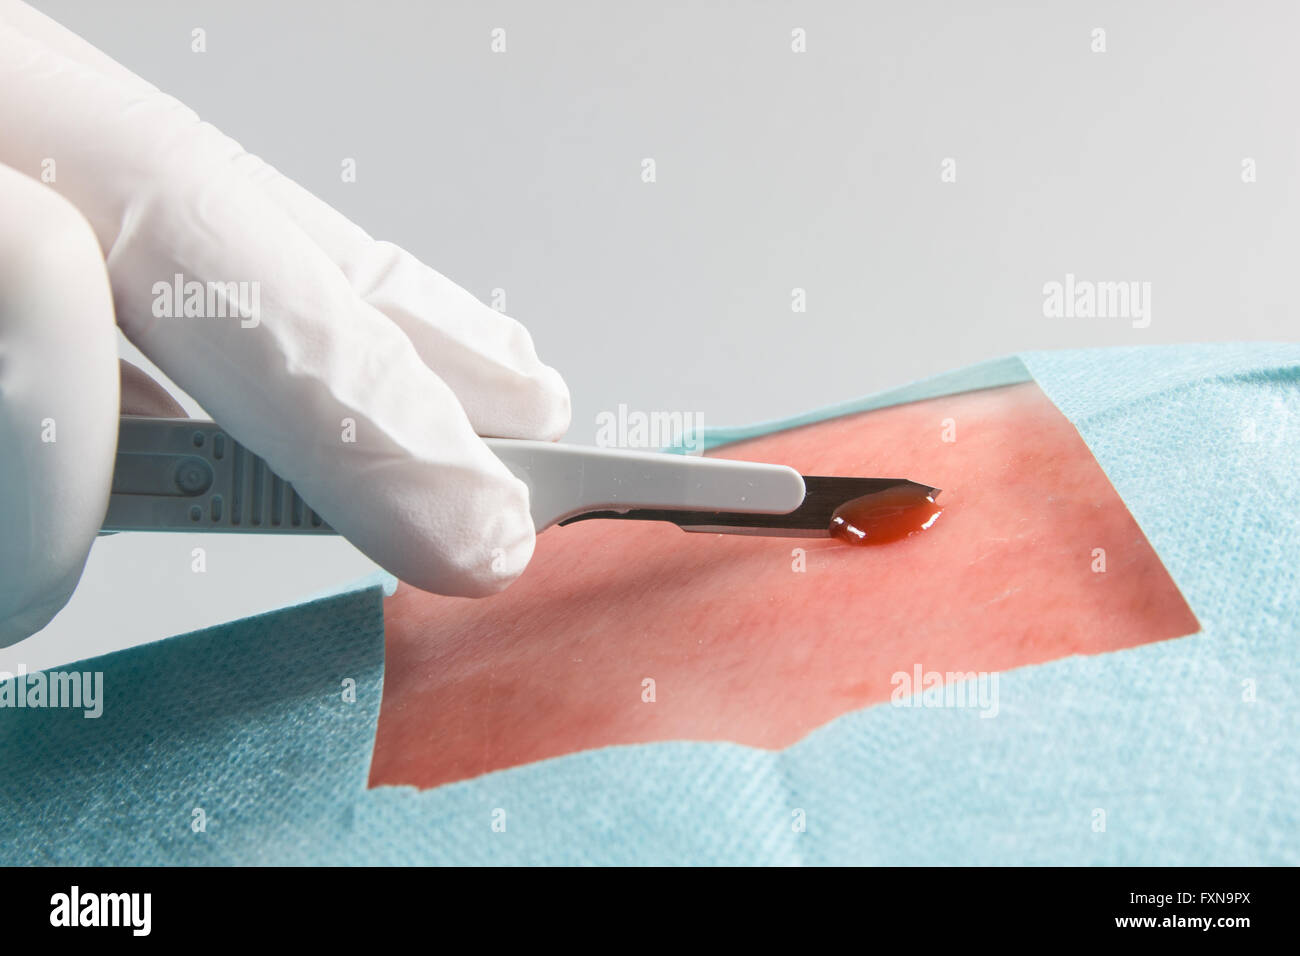 operation with scalpel - Stock Image